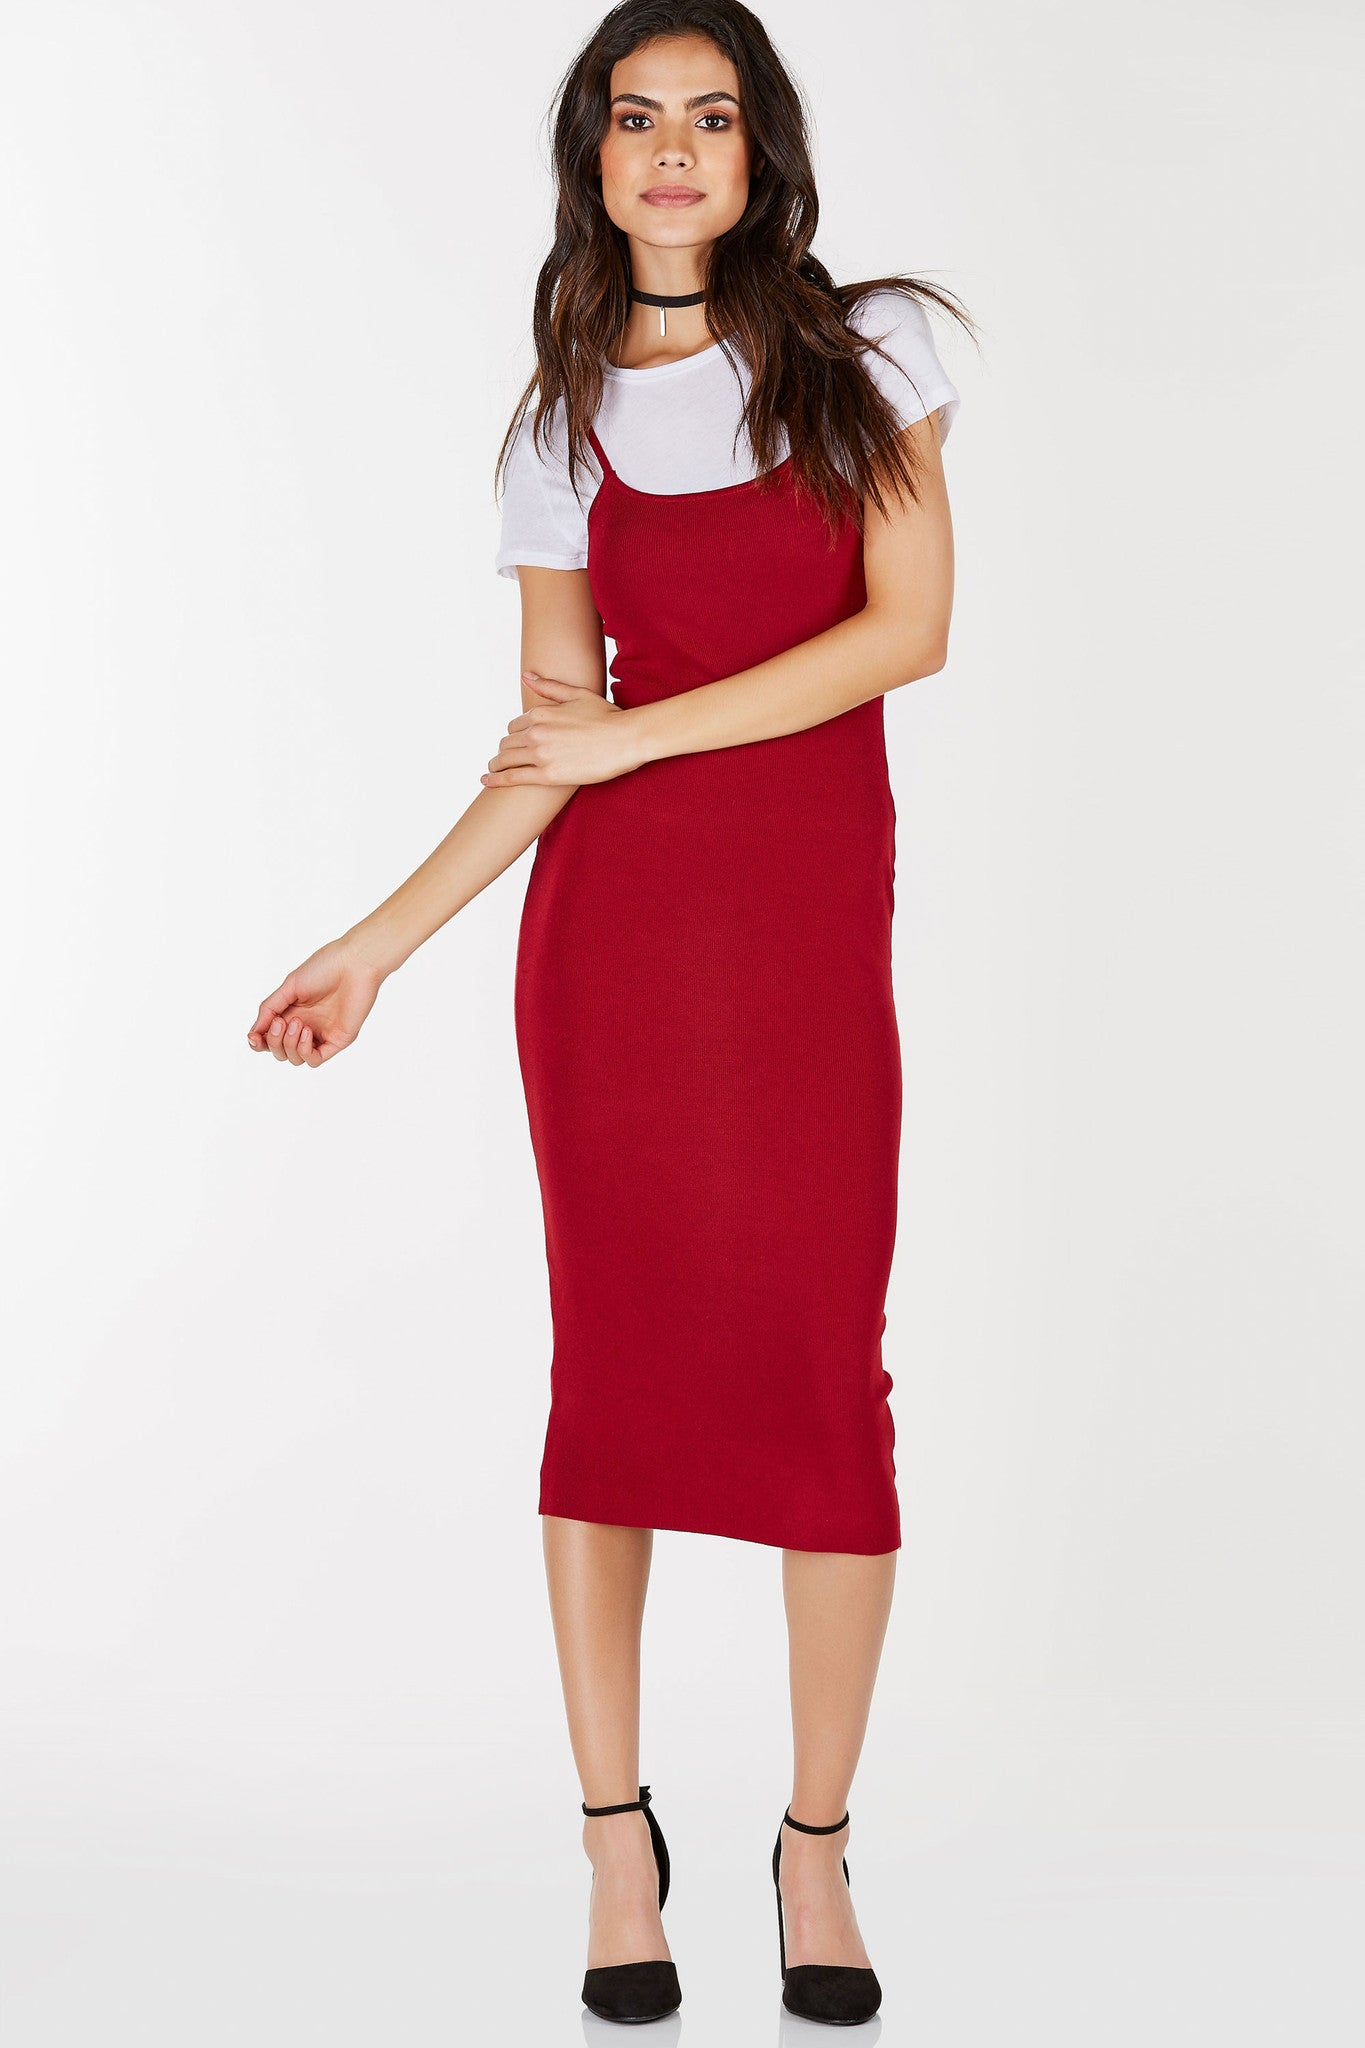 Keep it simple and sexy in the Cami Midi Dress that features adjustable thin straps. Feelin' sexy? Pair with some sexy stilettos or sneakers for a sporty casual look.